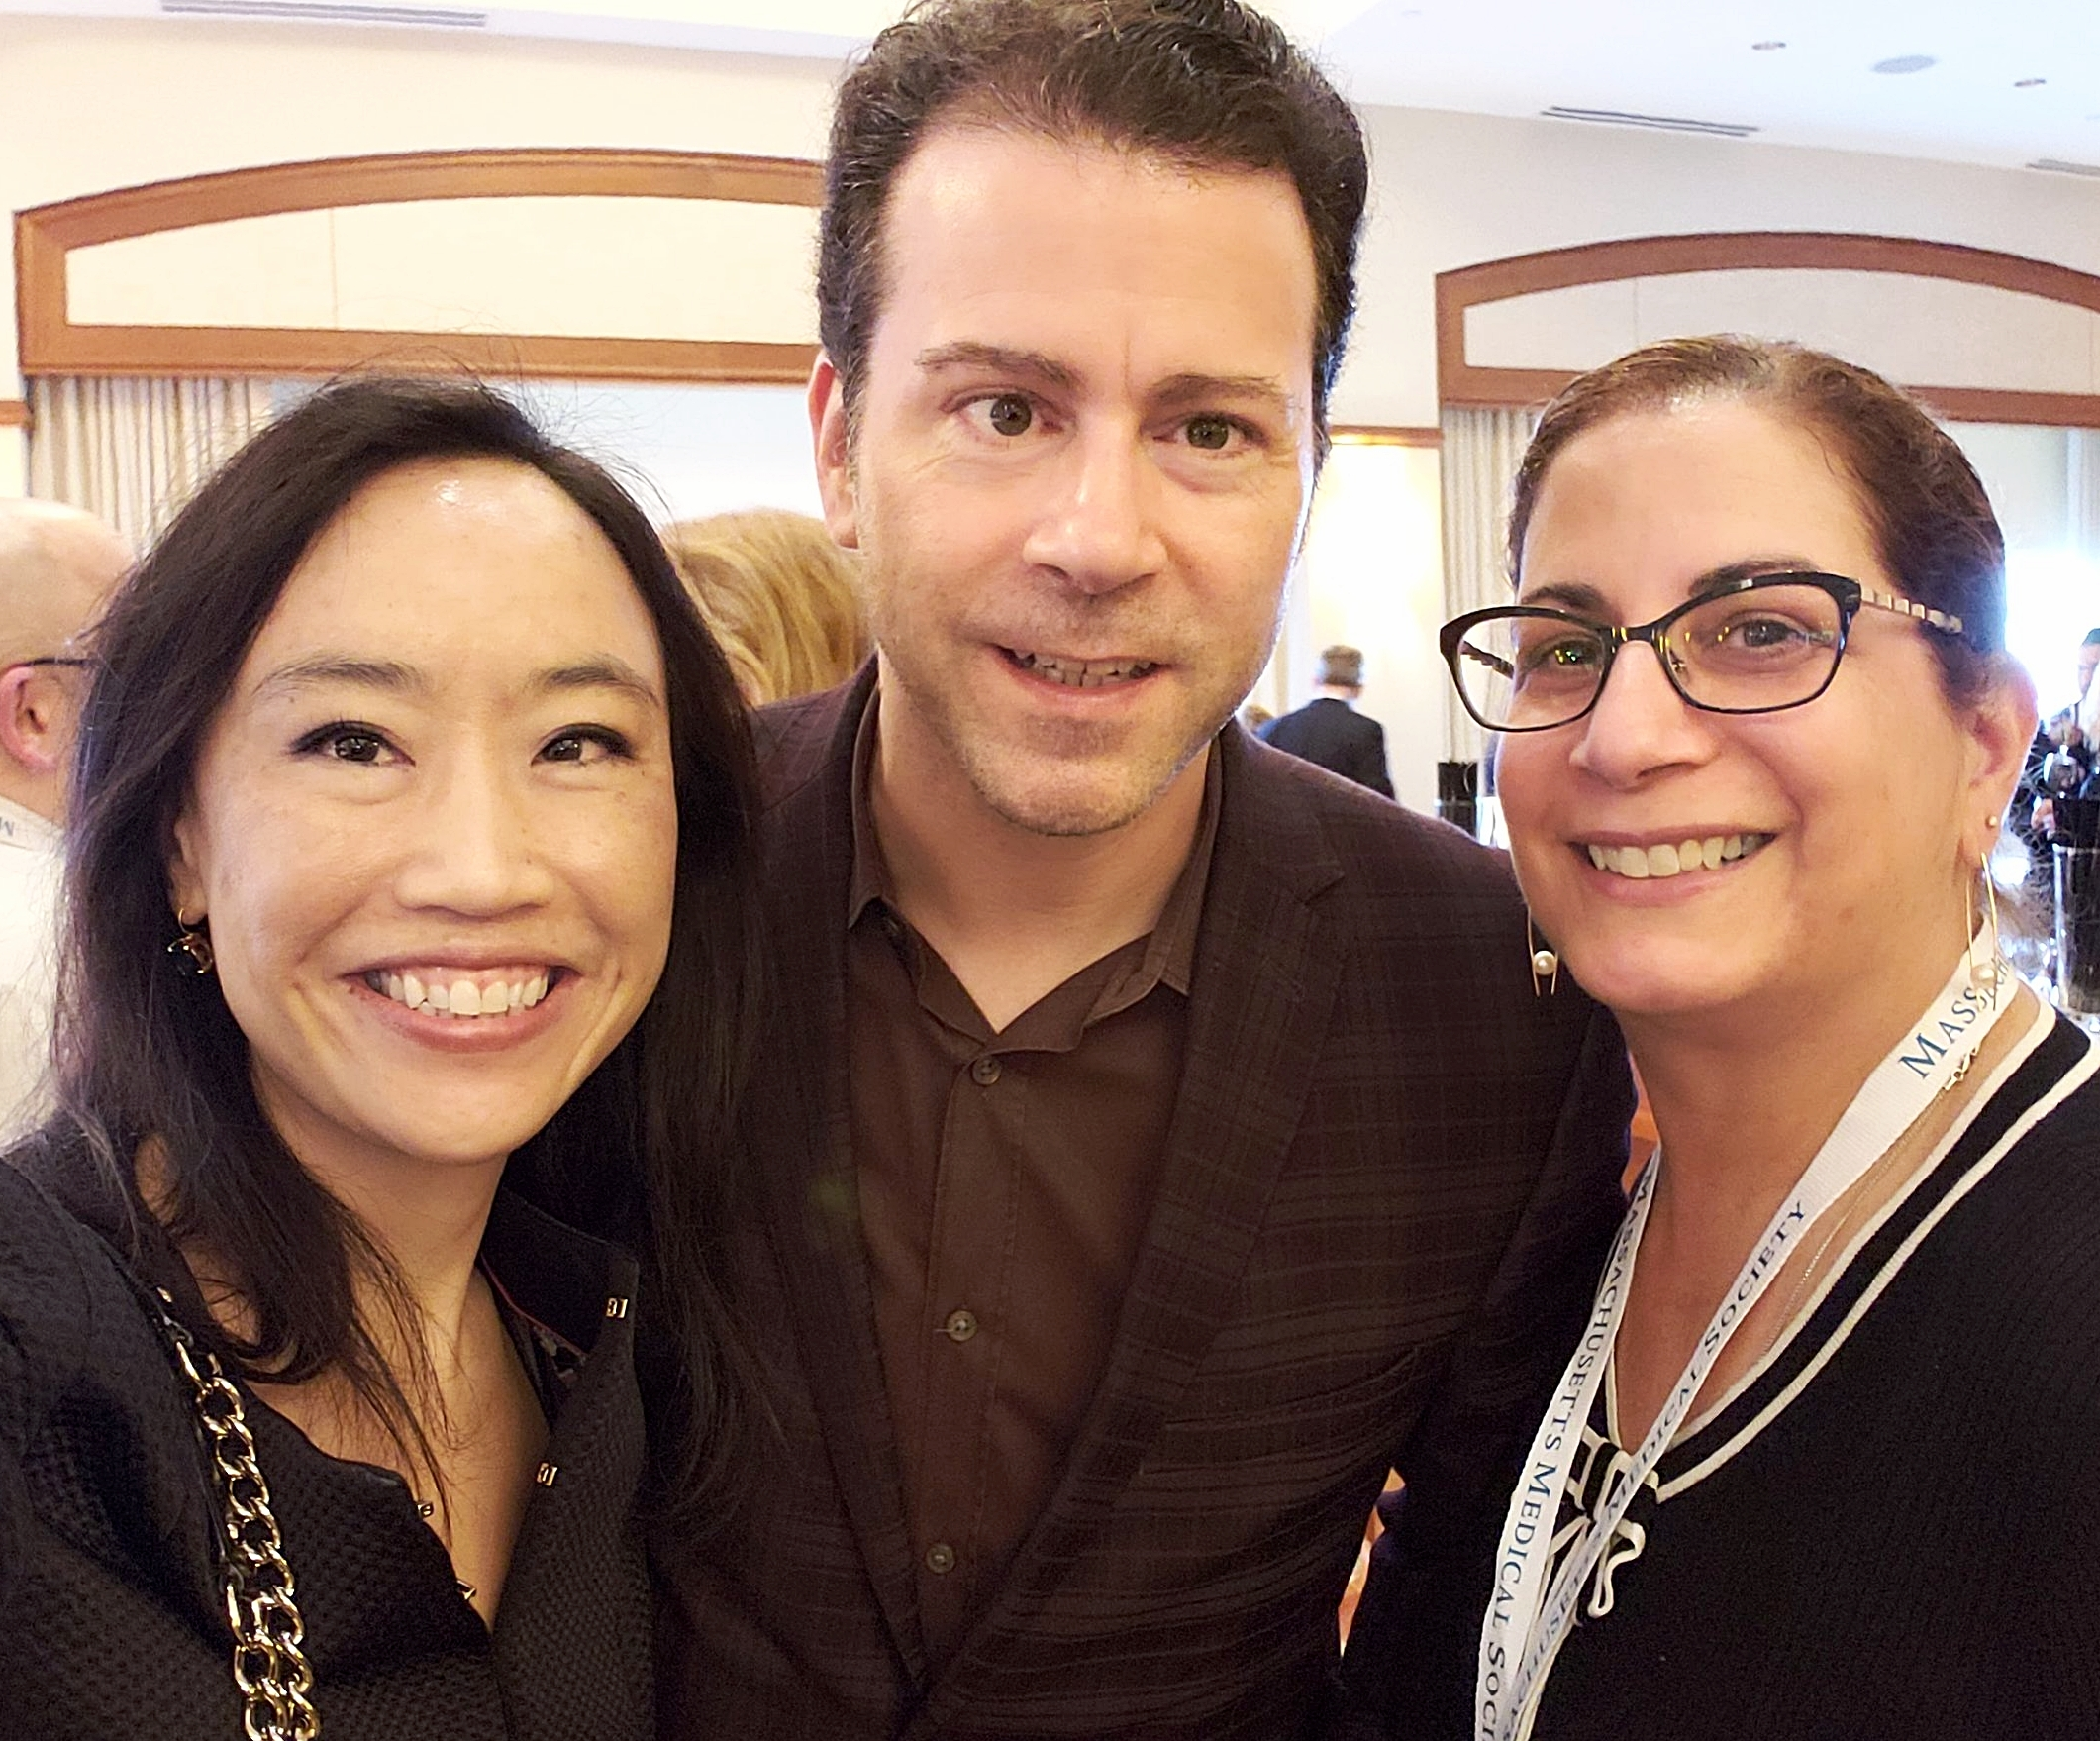 (From left to right) Jennifer Joe, MD (MMS IT Committee & Communications Committee member), James Ryan, Kathy Hughes, MD (MMS Women's Committee Chair)